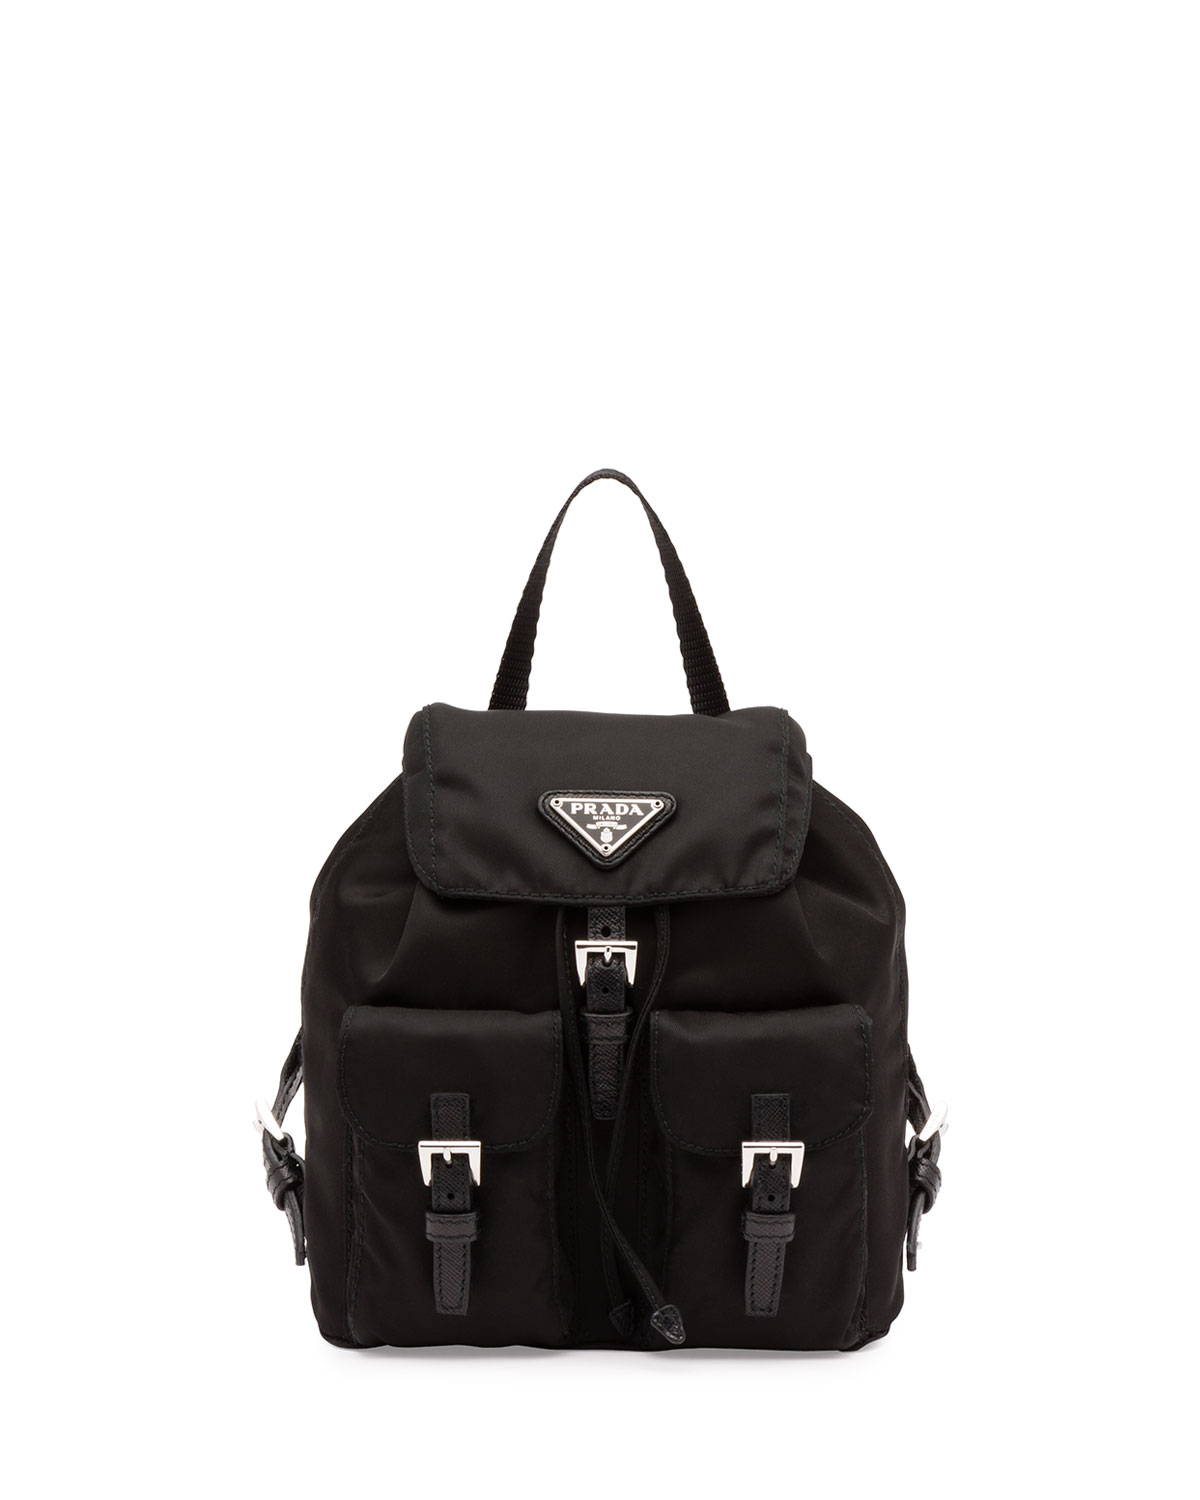 dec9e4cd9b0c Prada Vela Mini Crossbody Backpack Bag, Black (Nero) | Neiman Marcus